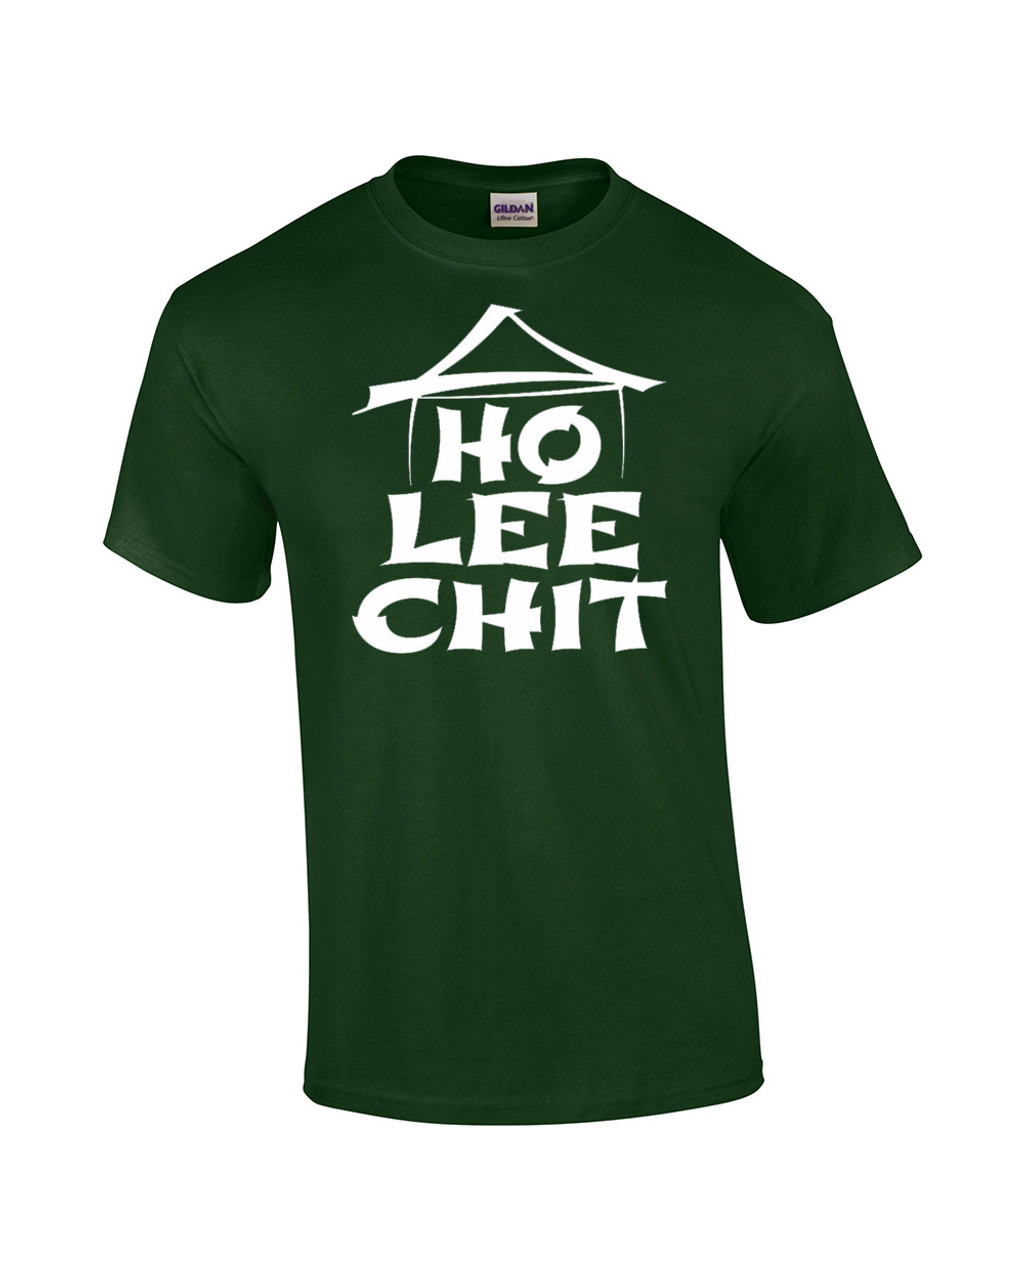 9bfd7433 Ho Lee Chit Holy Shit Funny Graphic Funny T-Shirt - Trenz Shirt Company